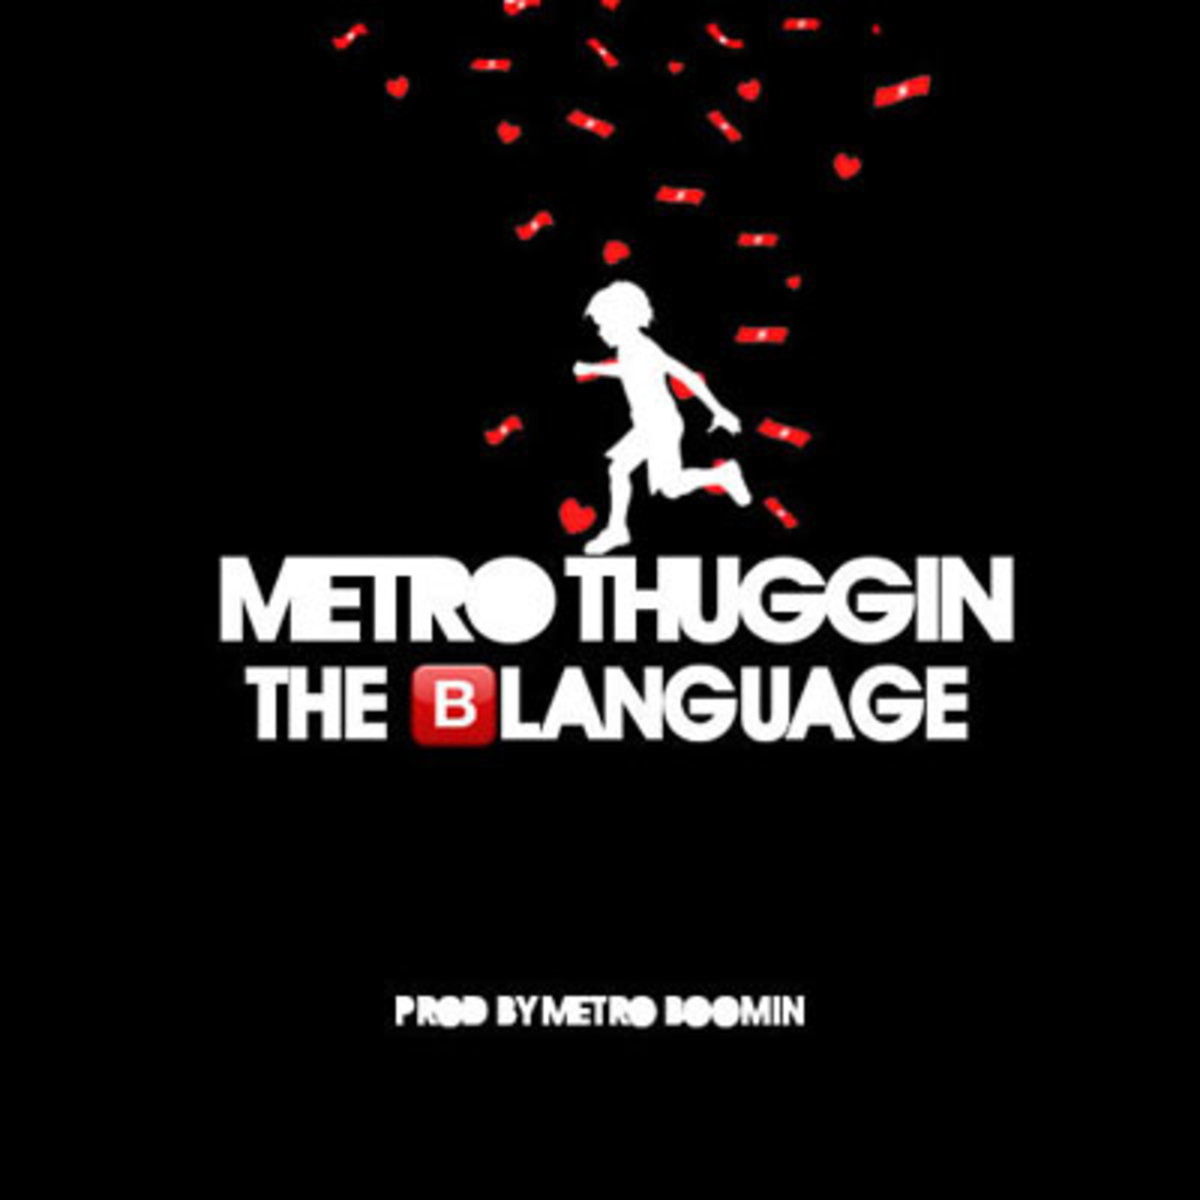 metrothuggin-theblanguage.jpg